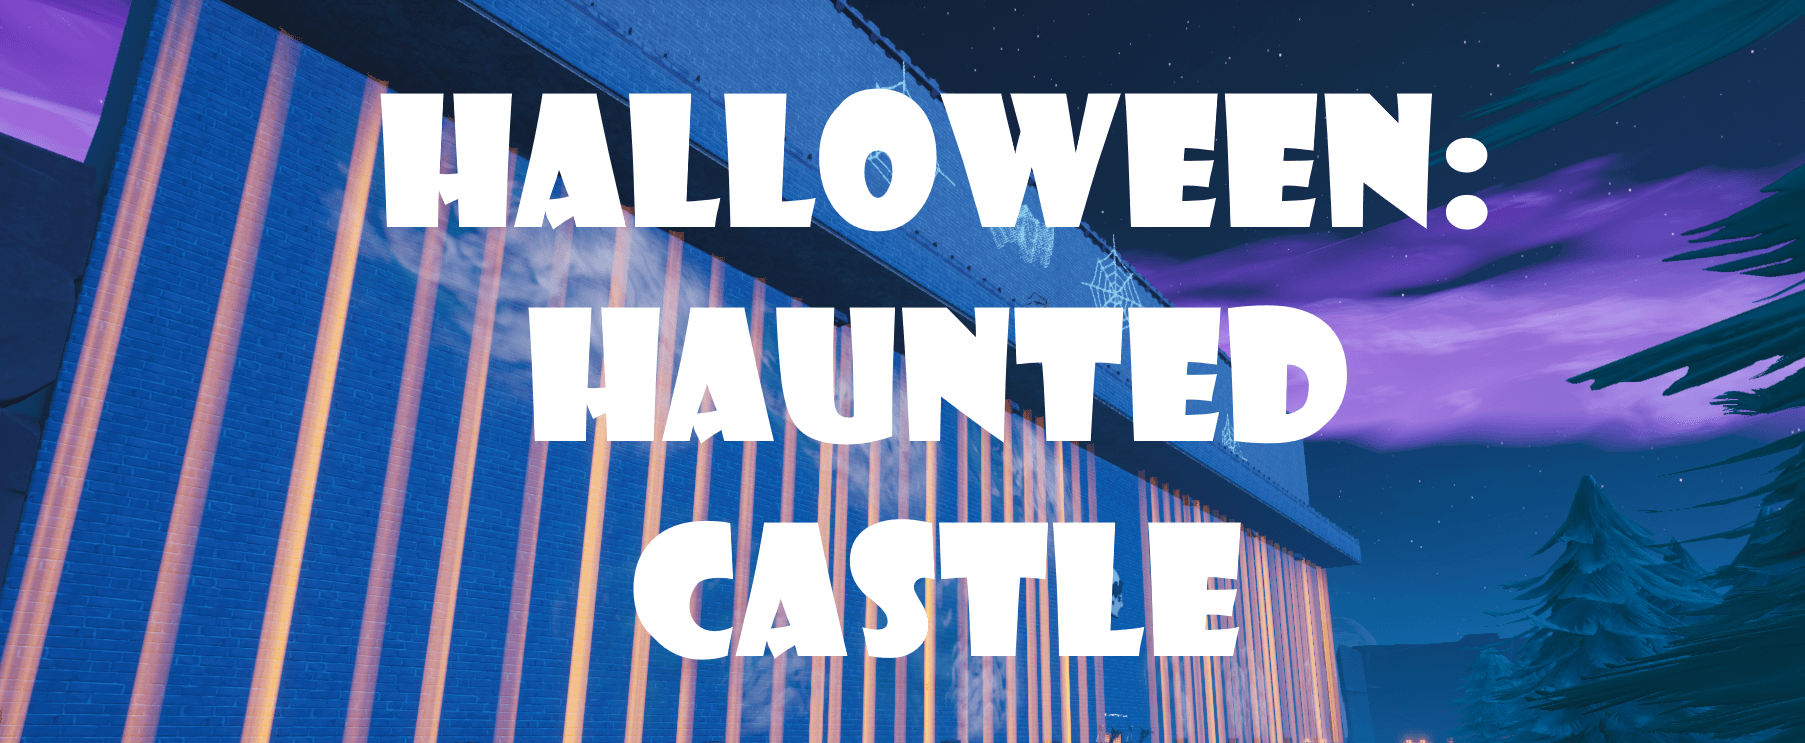 HALLOWEEN: HAUNTED CASTLE